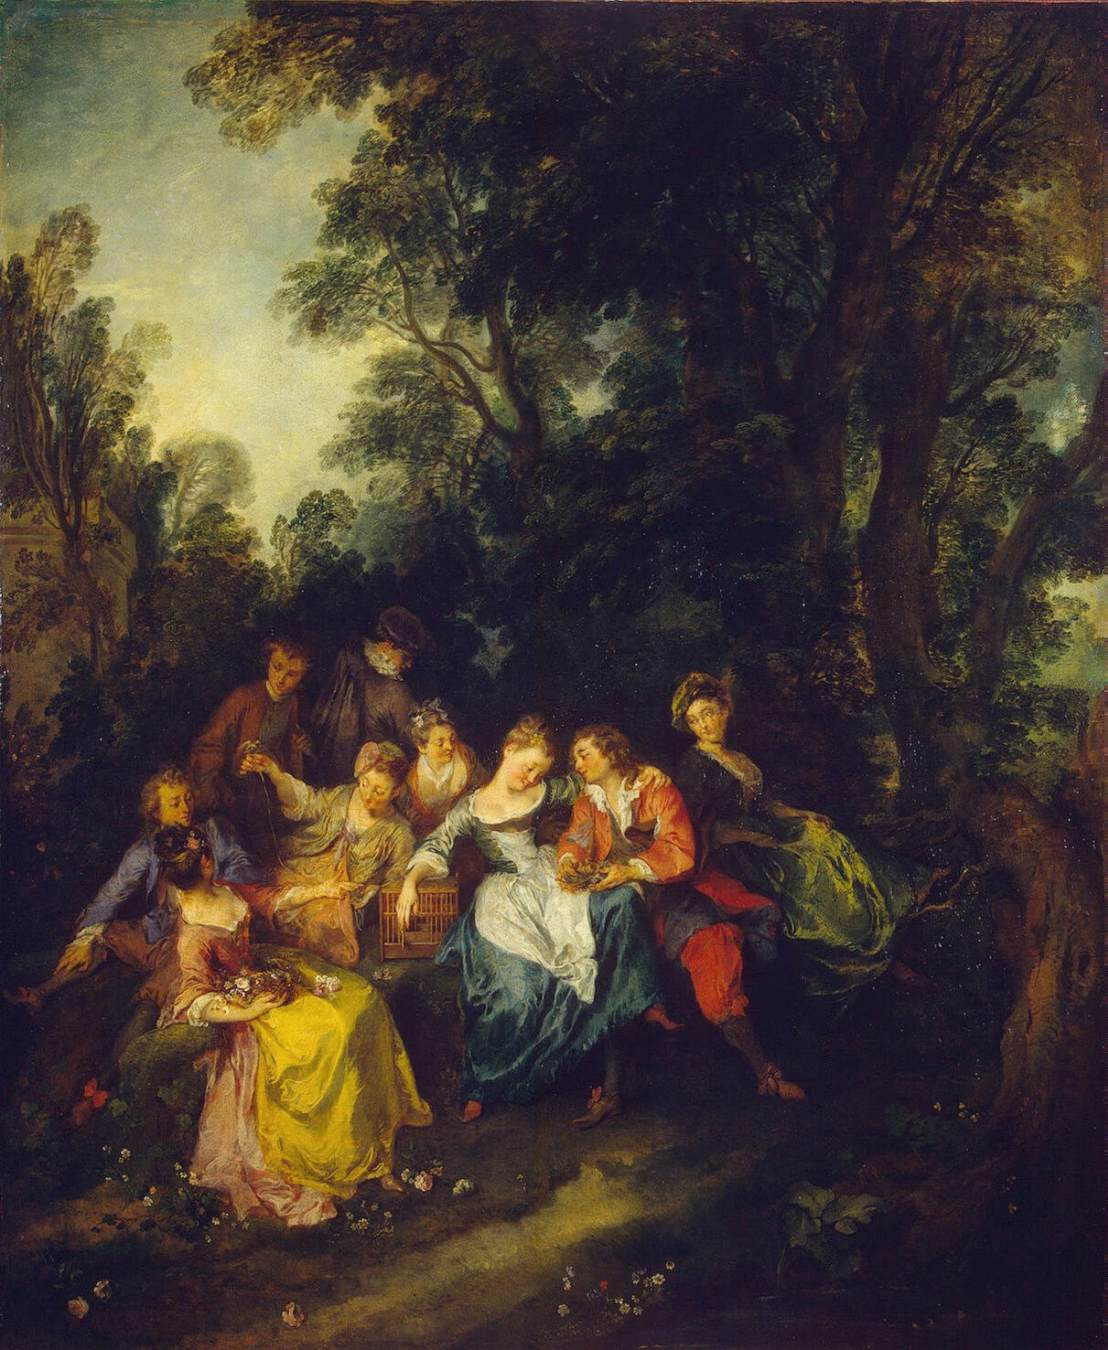 Oil on canvas, 1720, The Hermitage, St. Petersburg